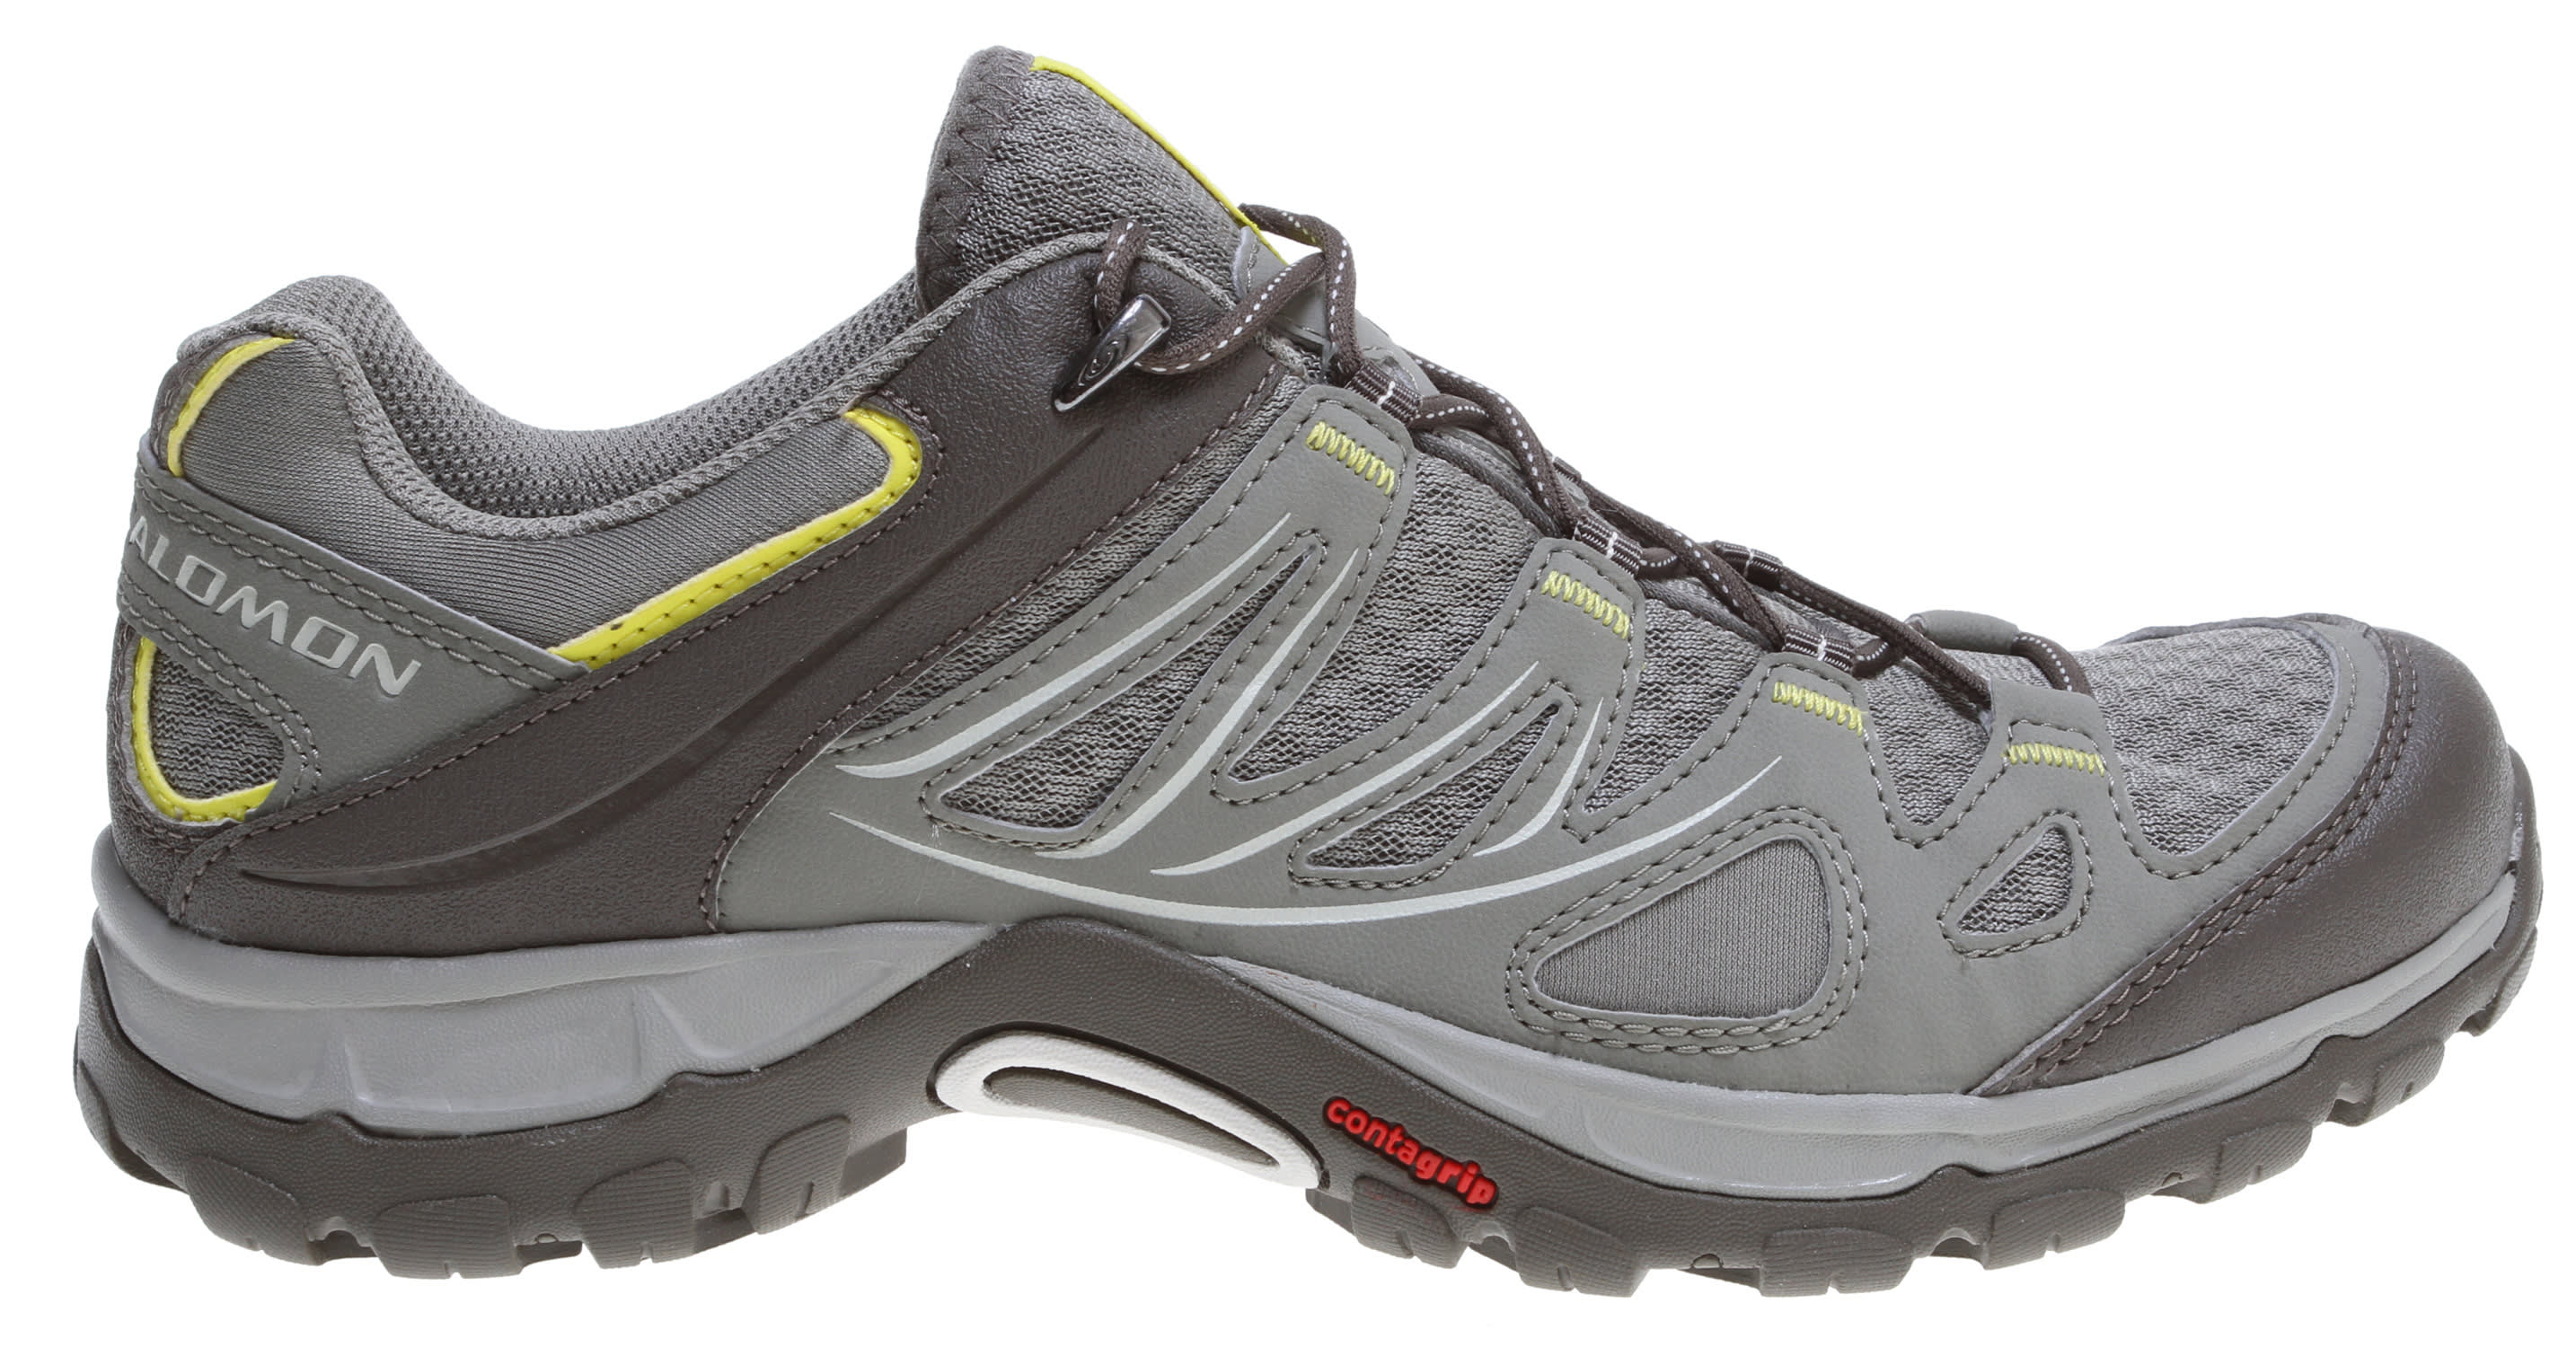 Salomon Womens Trail Running Shoes Review